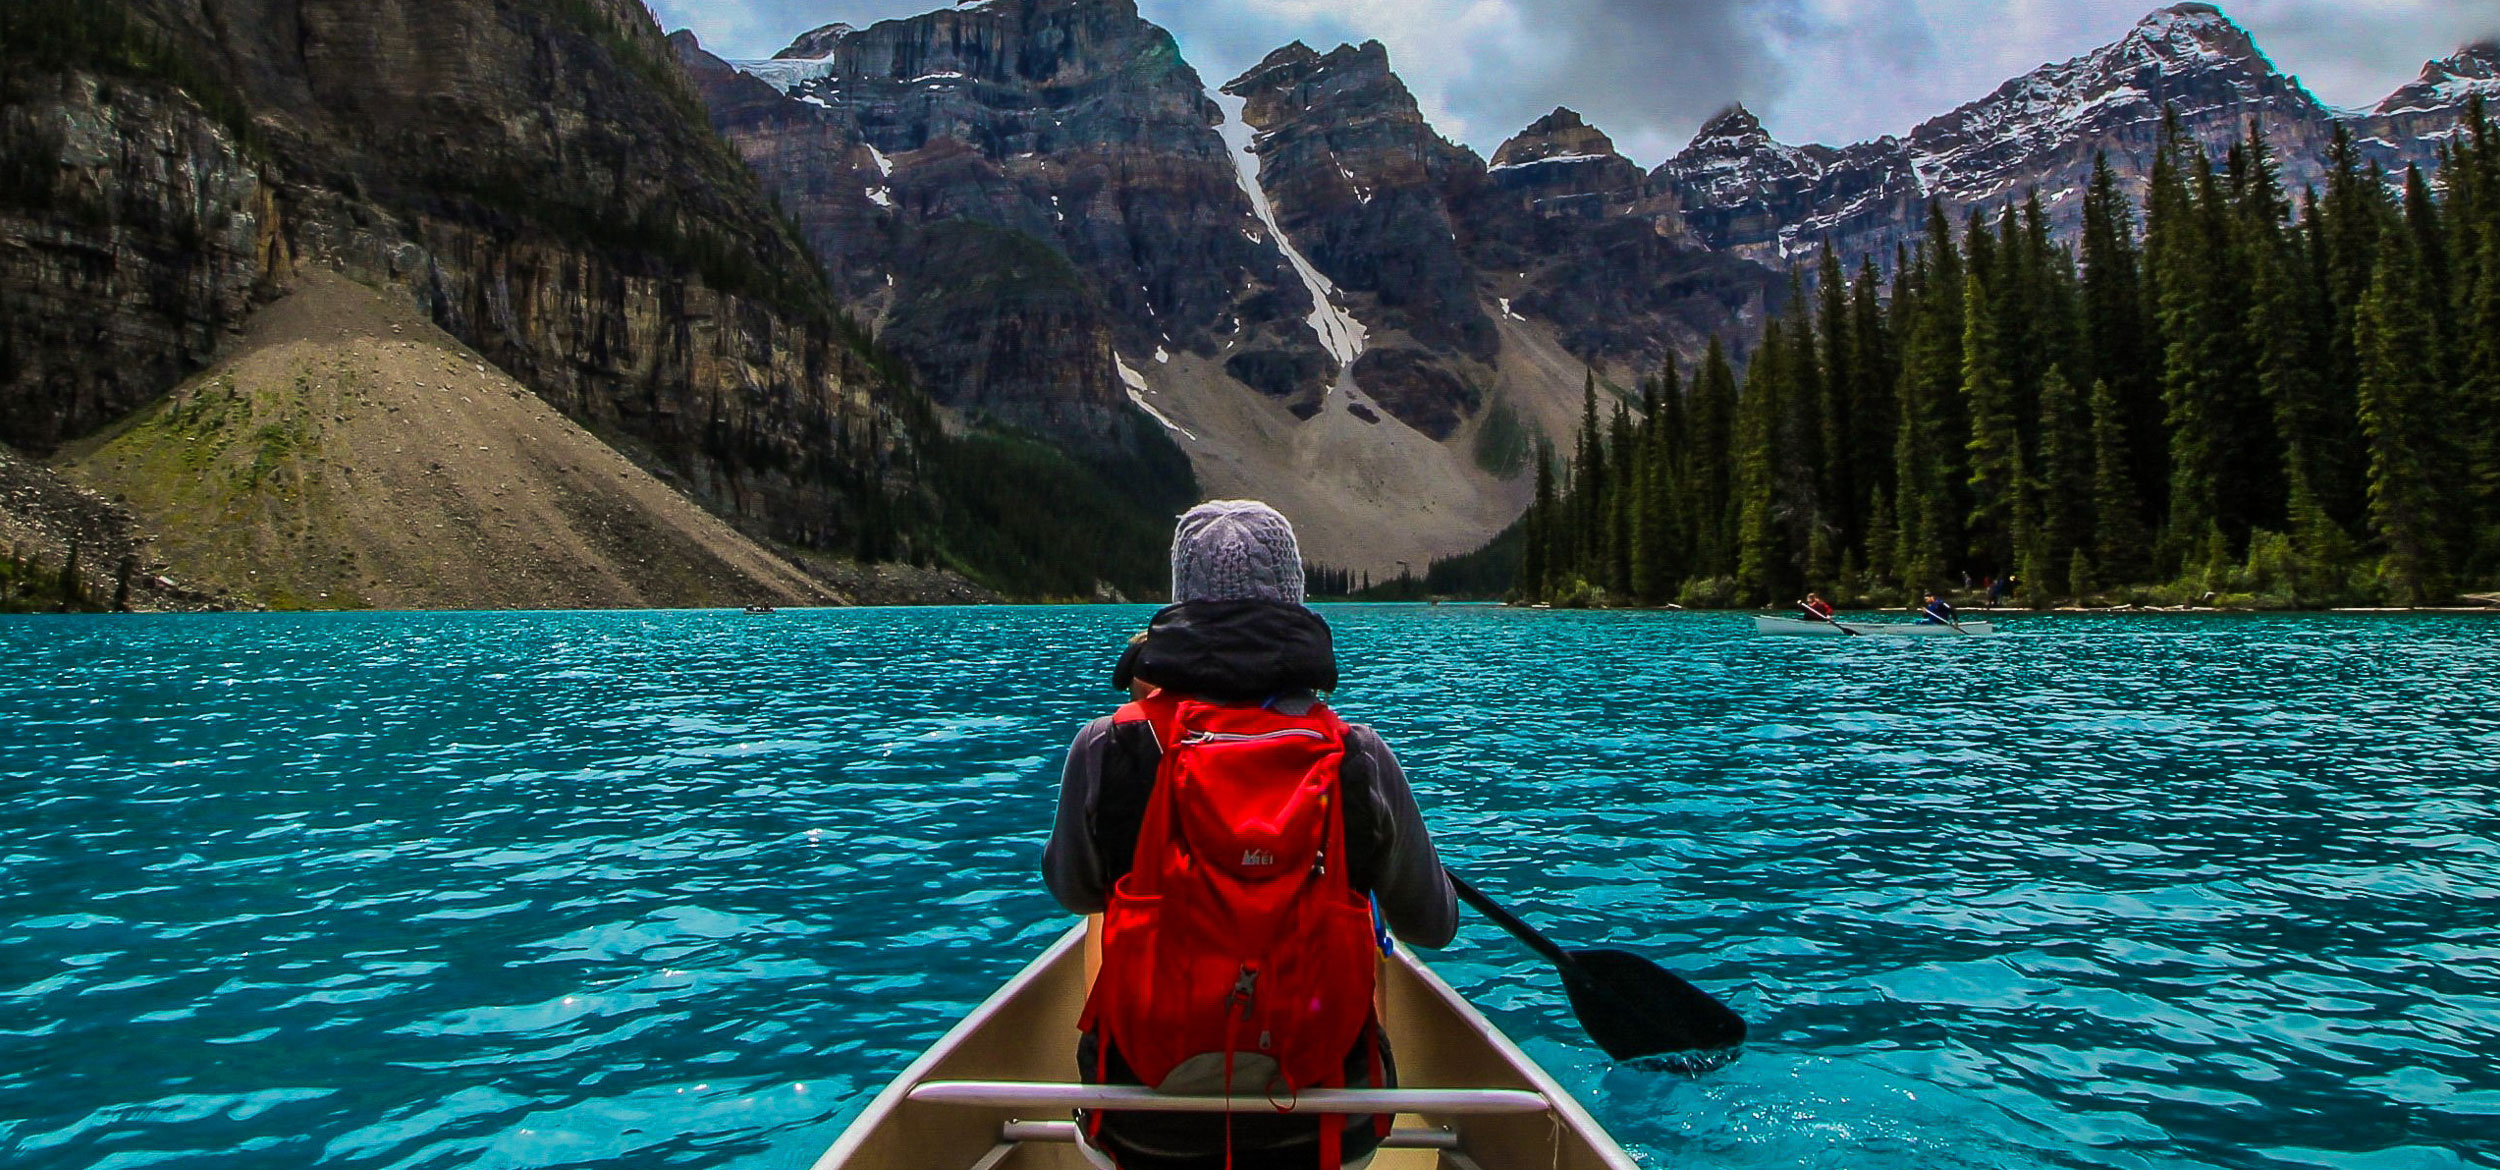 Woman canoeing on the turquoise water of Moraine Lake, in Banff National Park, Canada.